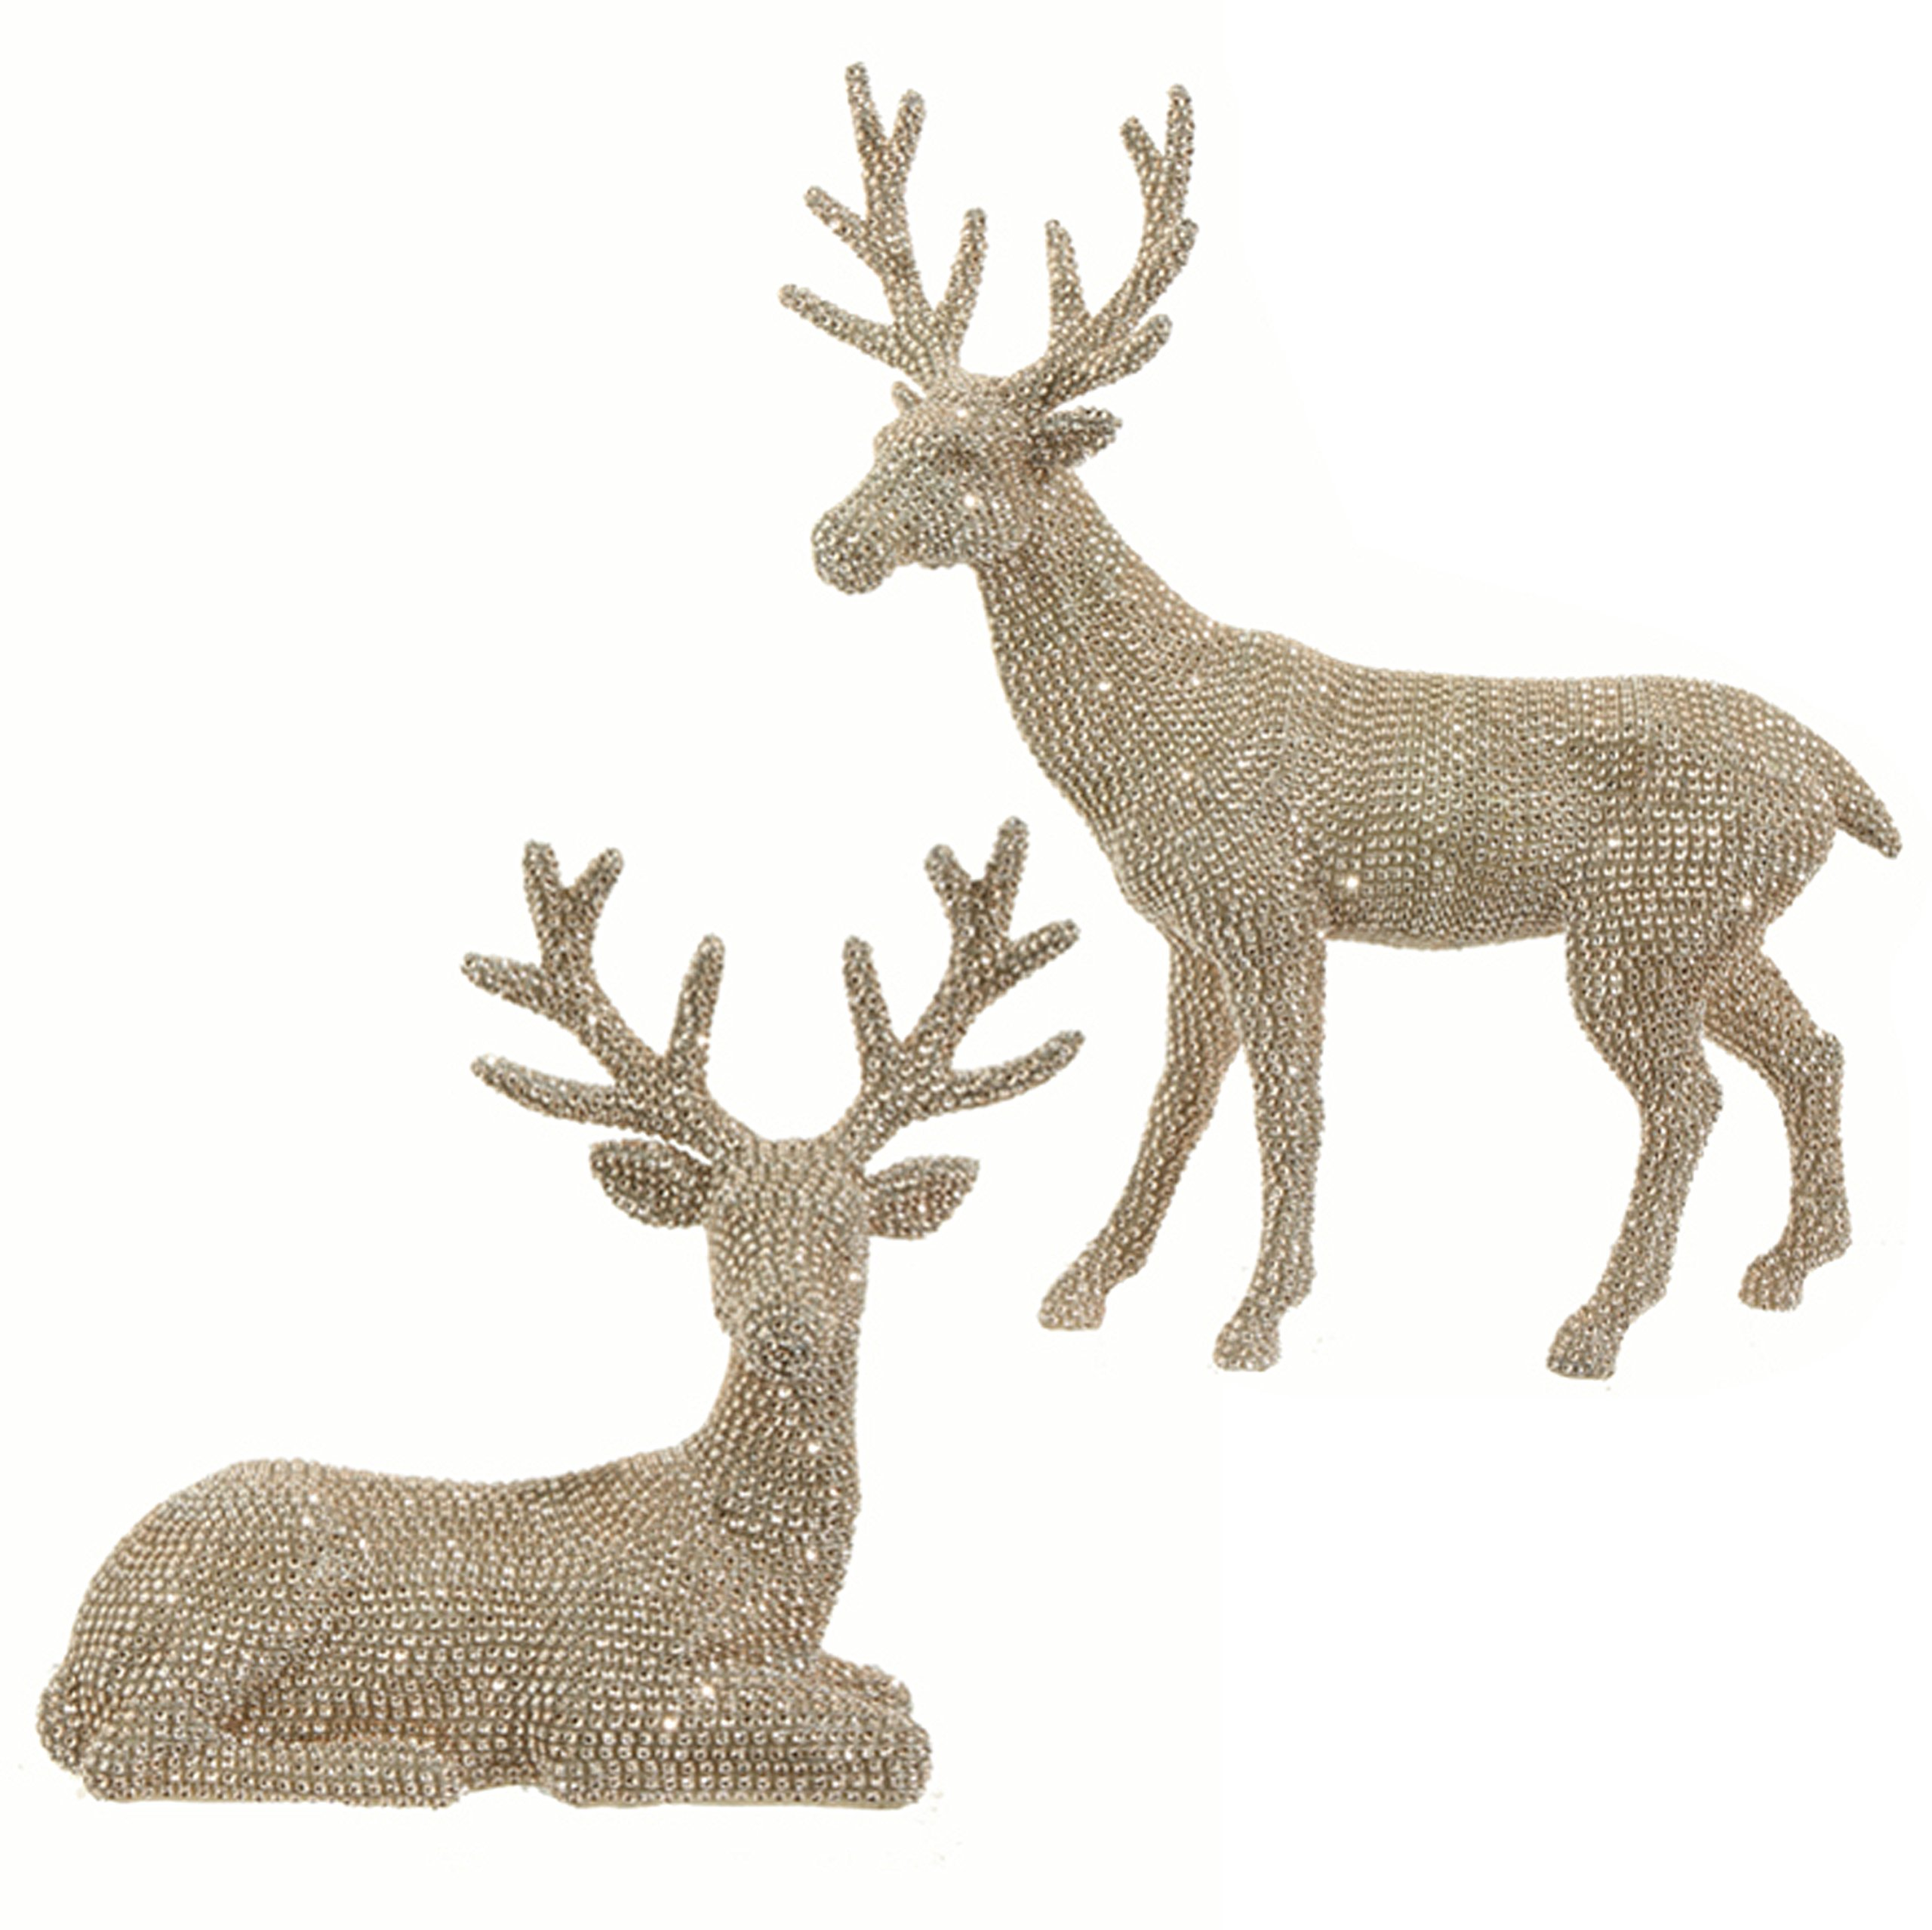 20 Inch High Set of 2 Rhinestone Champagne Gold Deer - Christmas Reindeer in Glittered Rhinestone by Raz